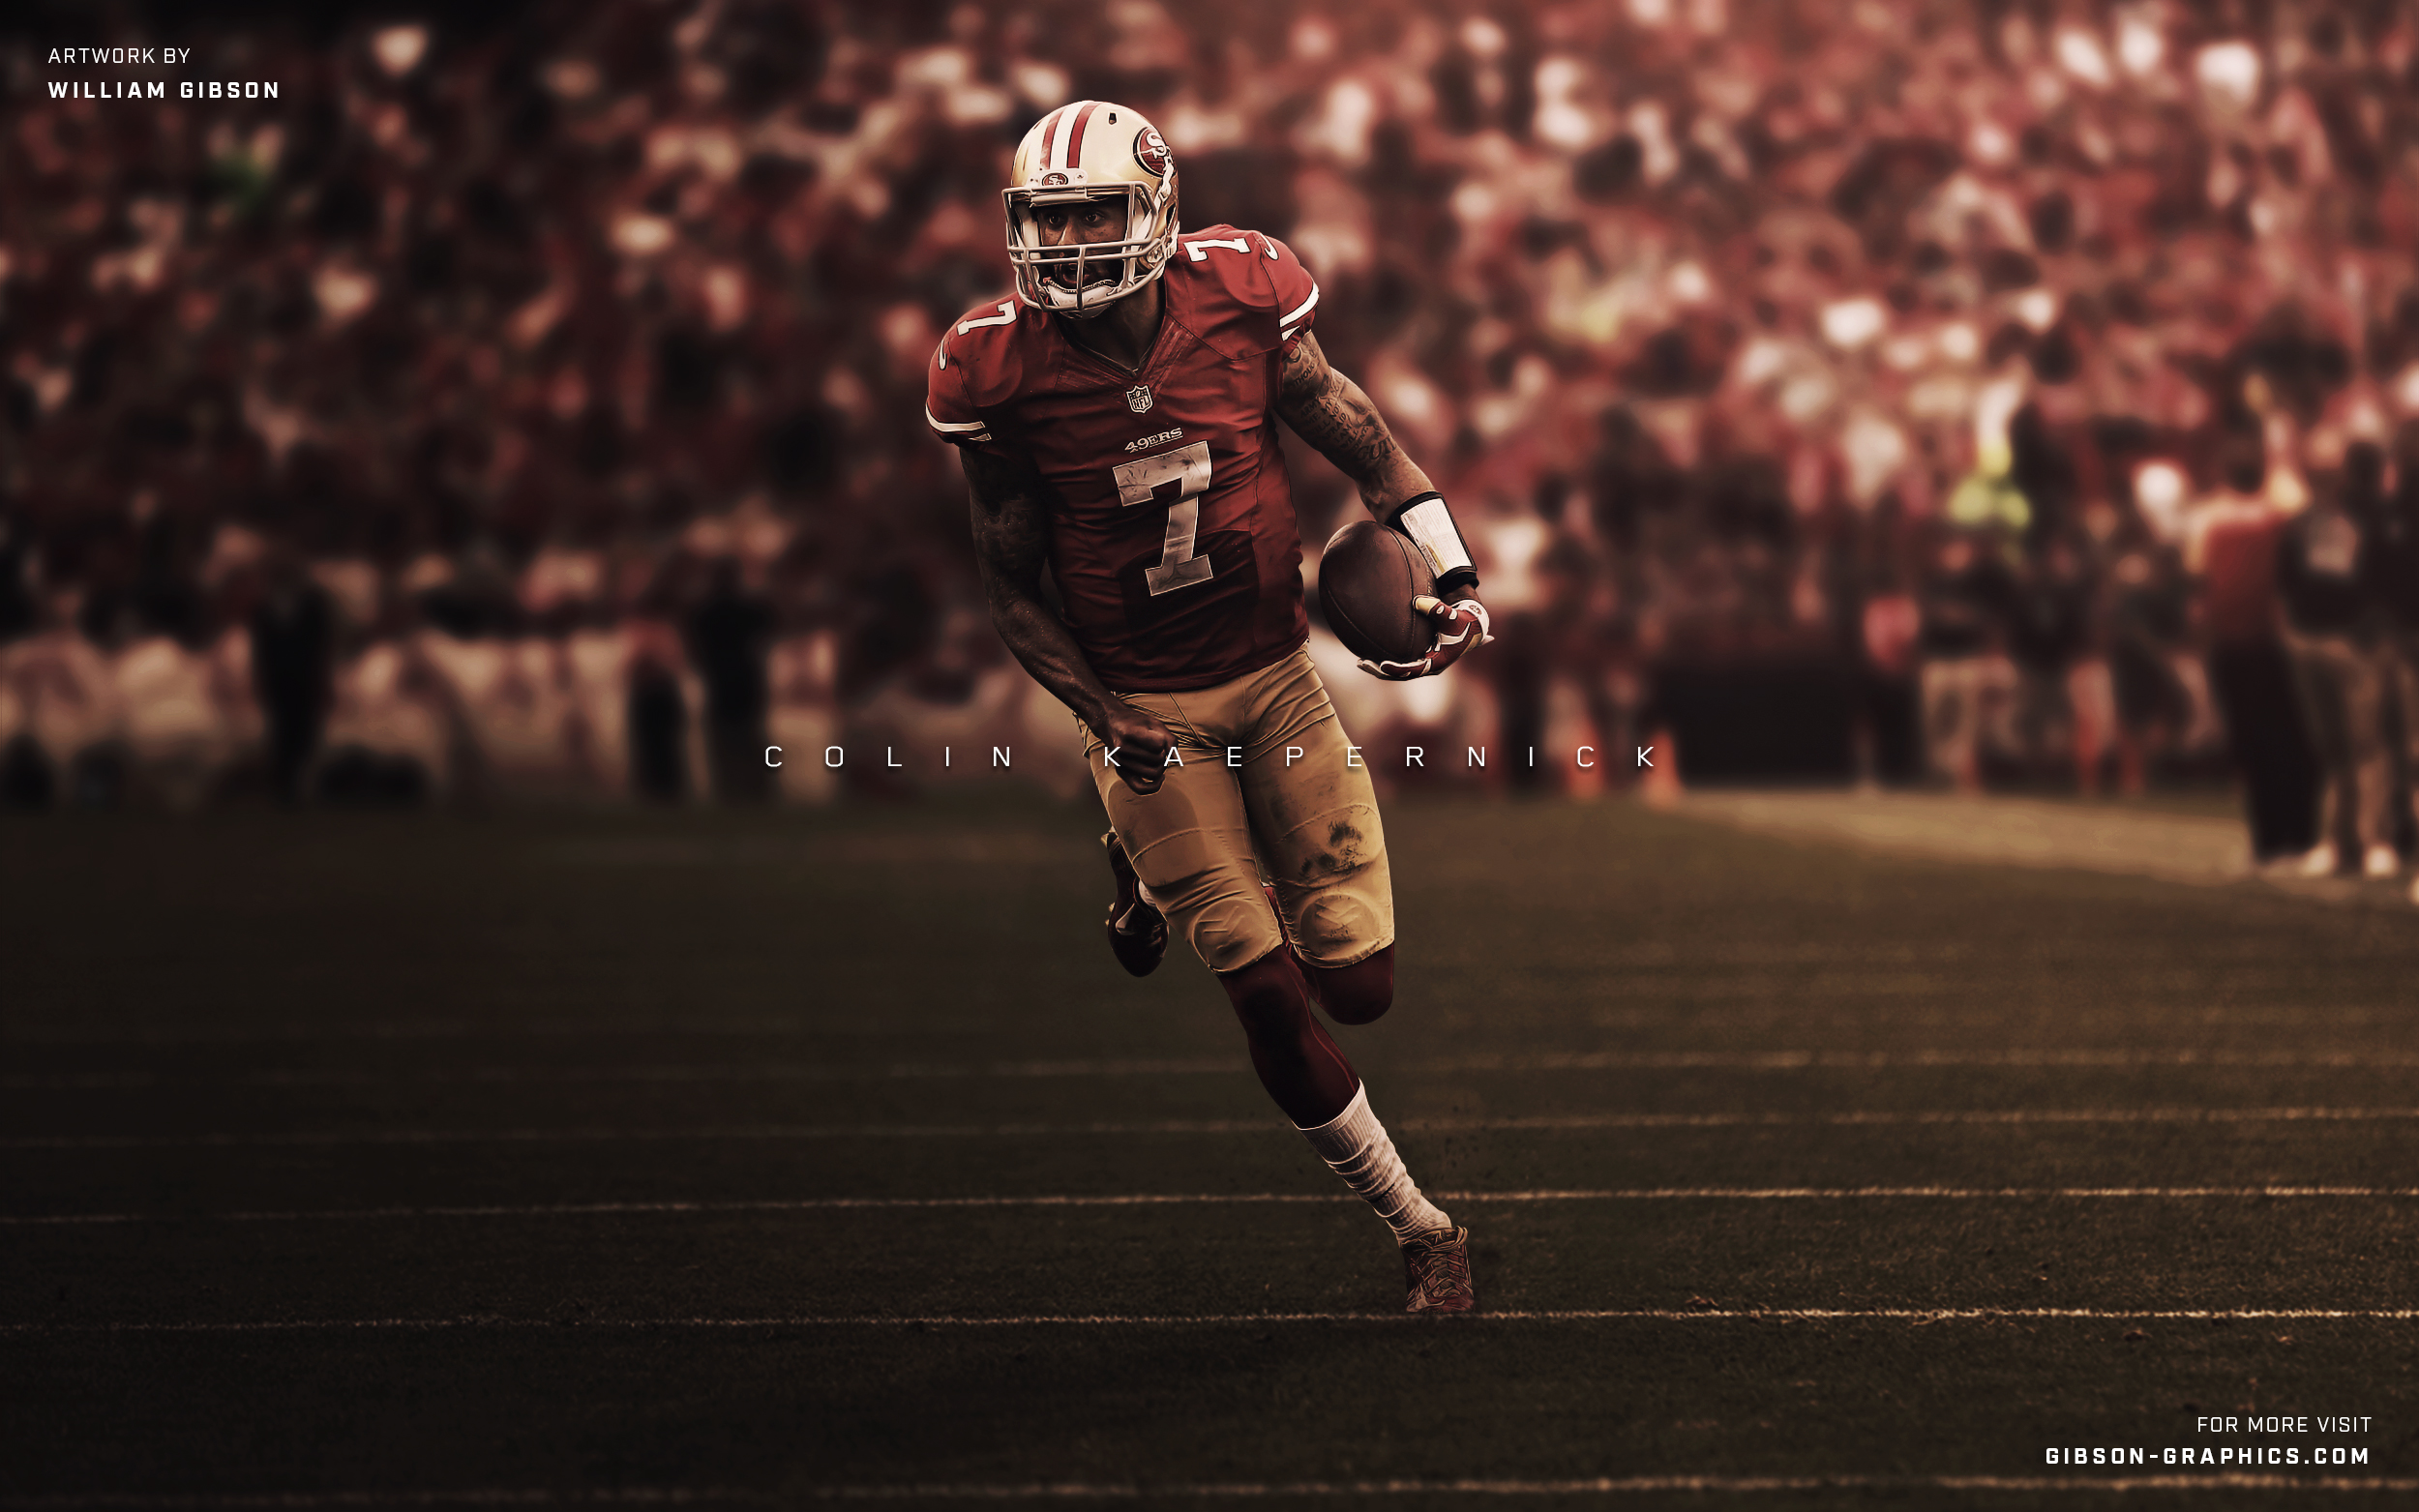 Colin Kaepernick Artwork